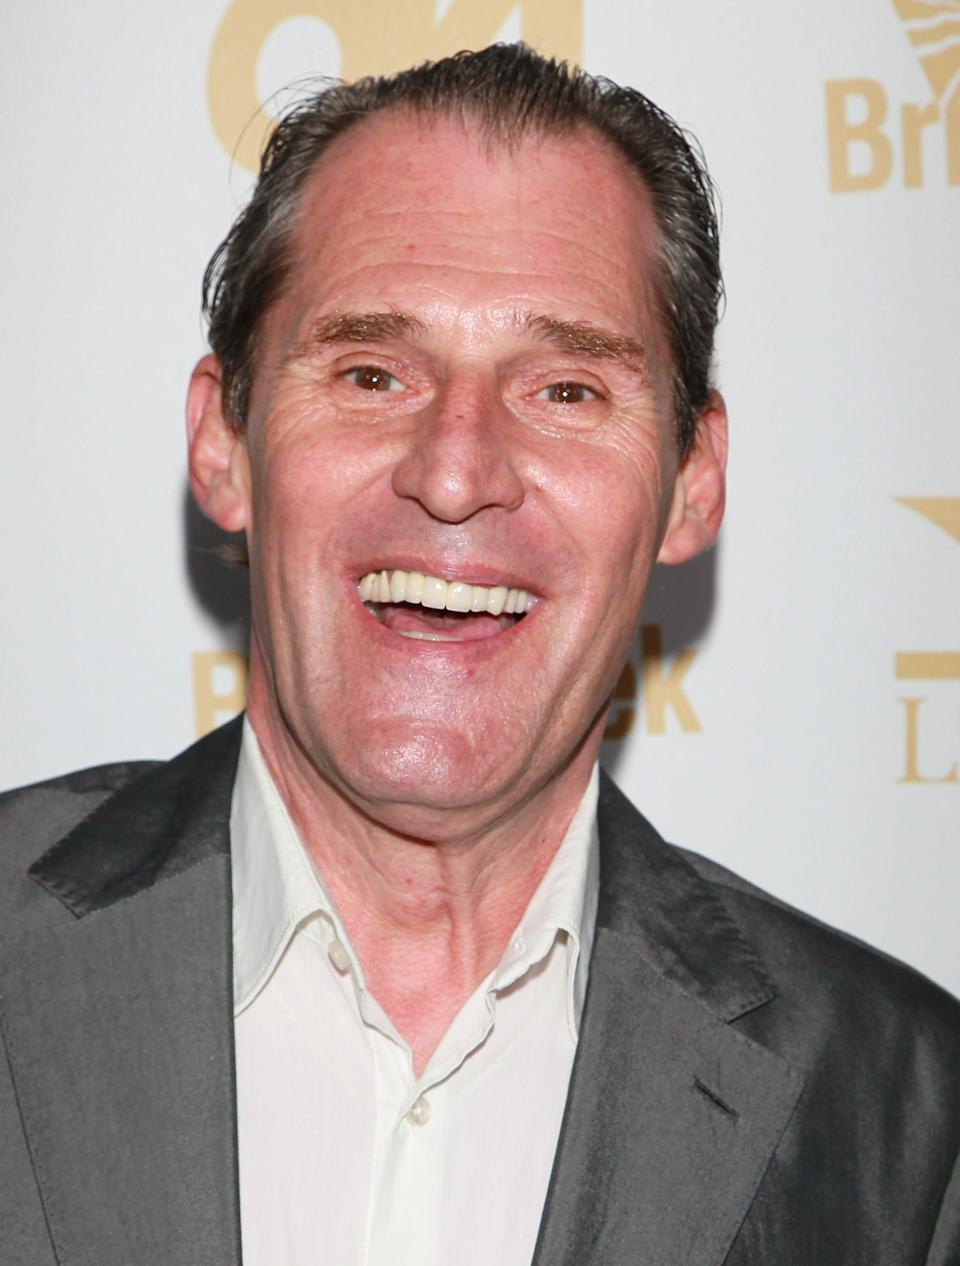 Actor Ben Cross attends the OK! Magazine and BritWeek Oscars party at The London West Hollywood on February 25, 2011 in West Hollywood, California.